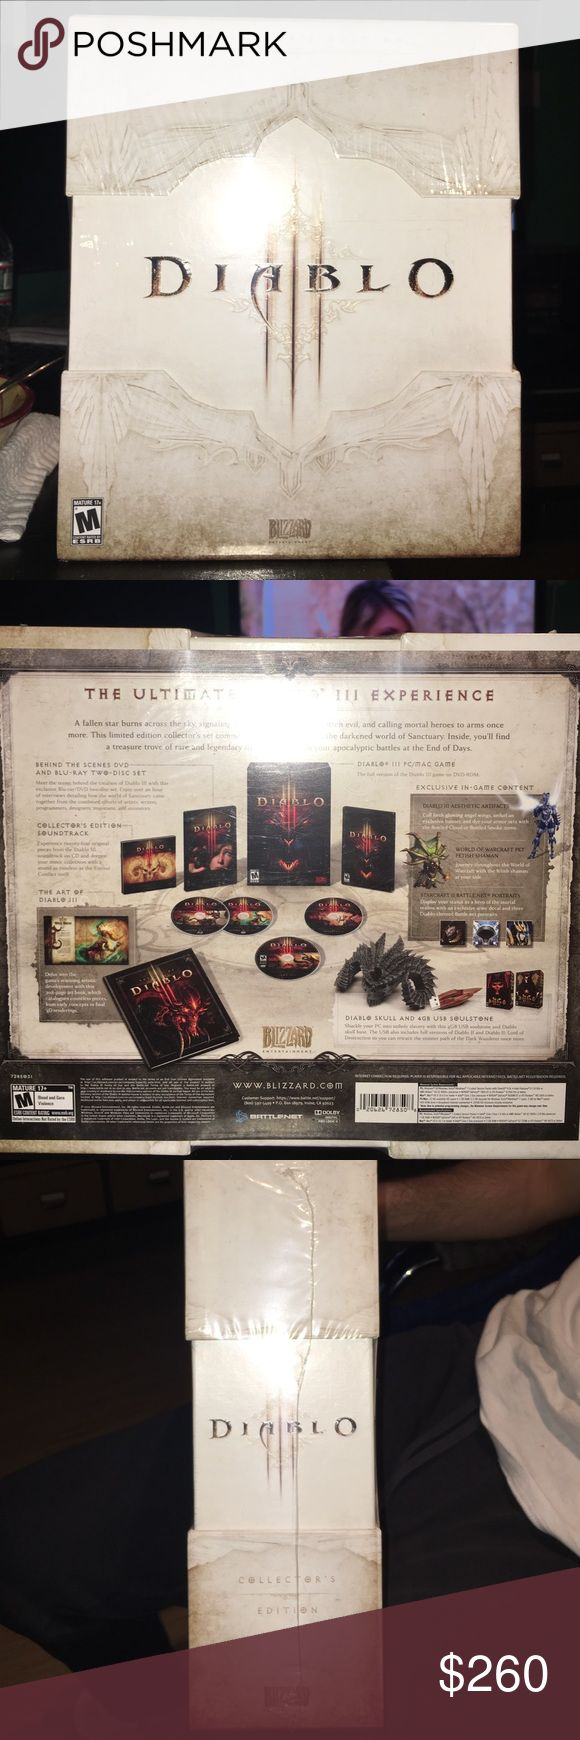 Diablo 3 Collectors Edition PC Game Sealed My Bf wants to sells his never open collectors edition on diablo 3 includes : Diablo 3 PC Game, Diablo Skull and 4 USB Soulstone, The Art Of Diablo 3, Collectors Edition Soundtrack, and Behind The Scene DVD and Blu-Ray Two Disc Set Windows / Mac Other